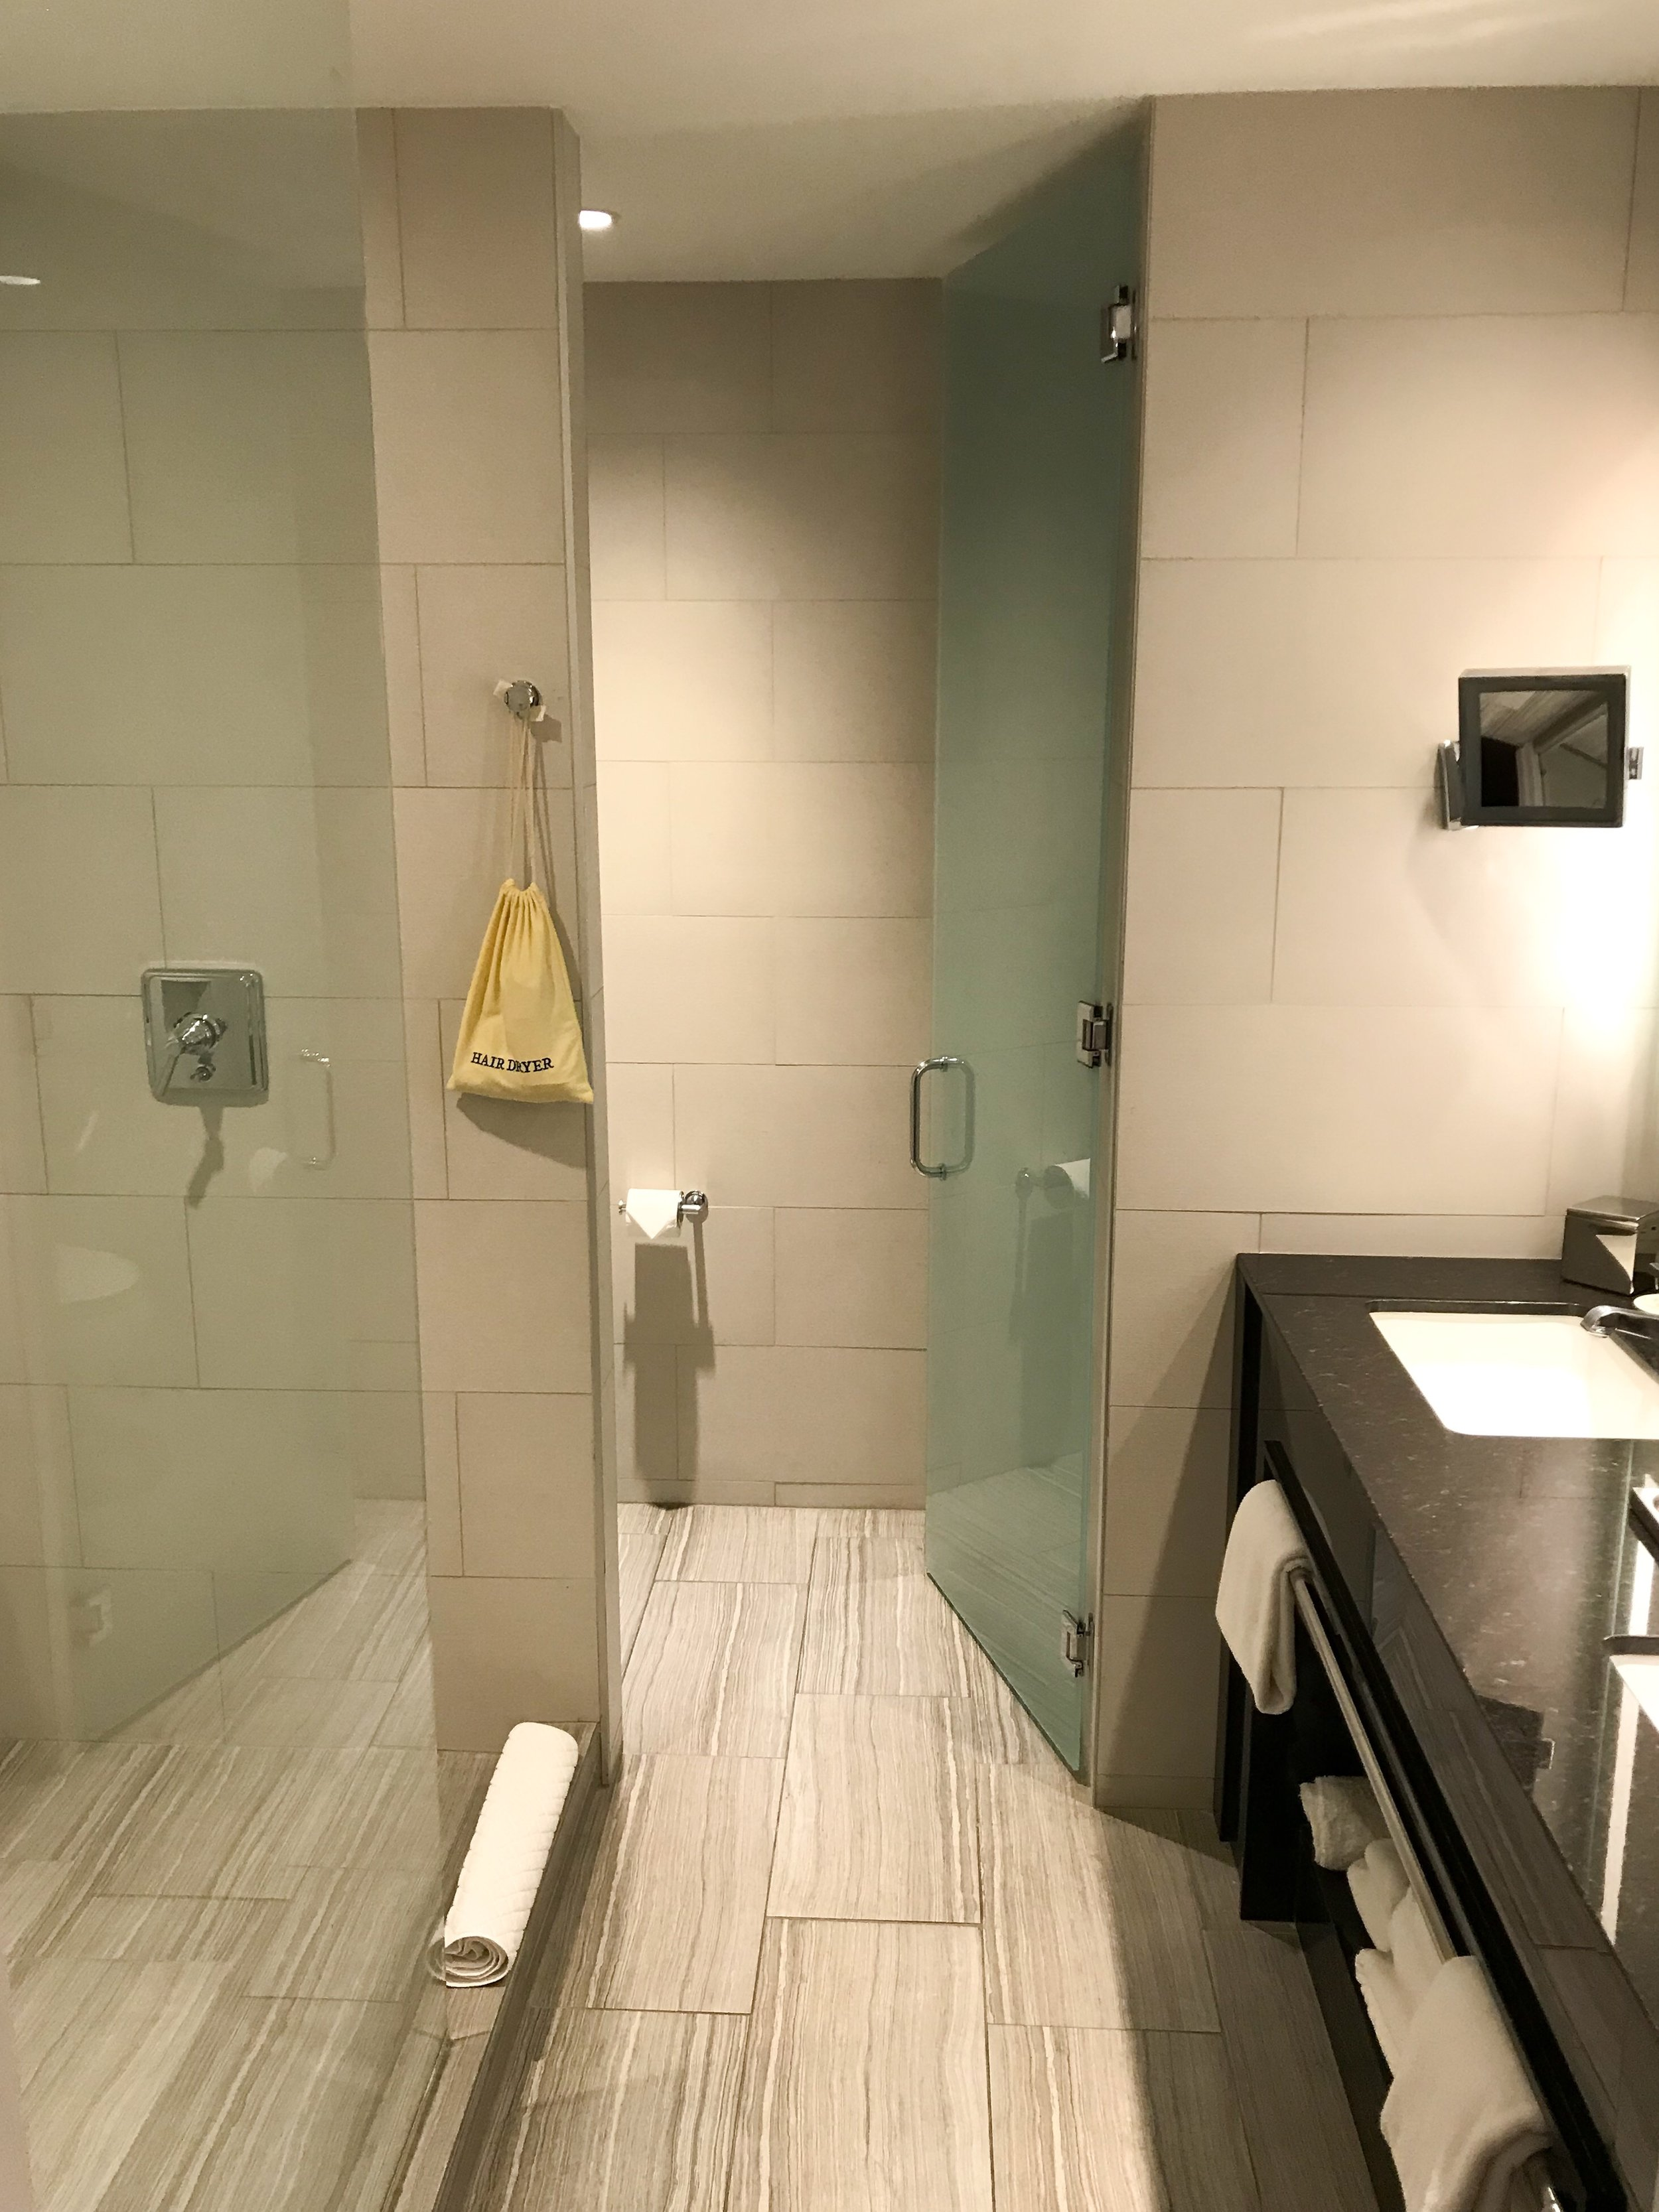 The bathroom was recently updated and was a good size.